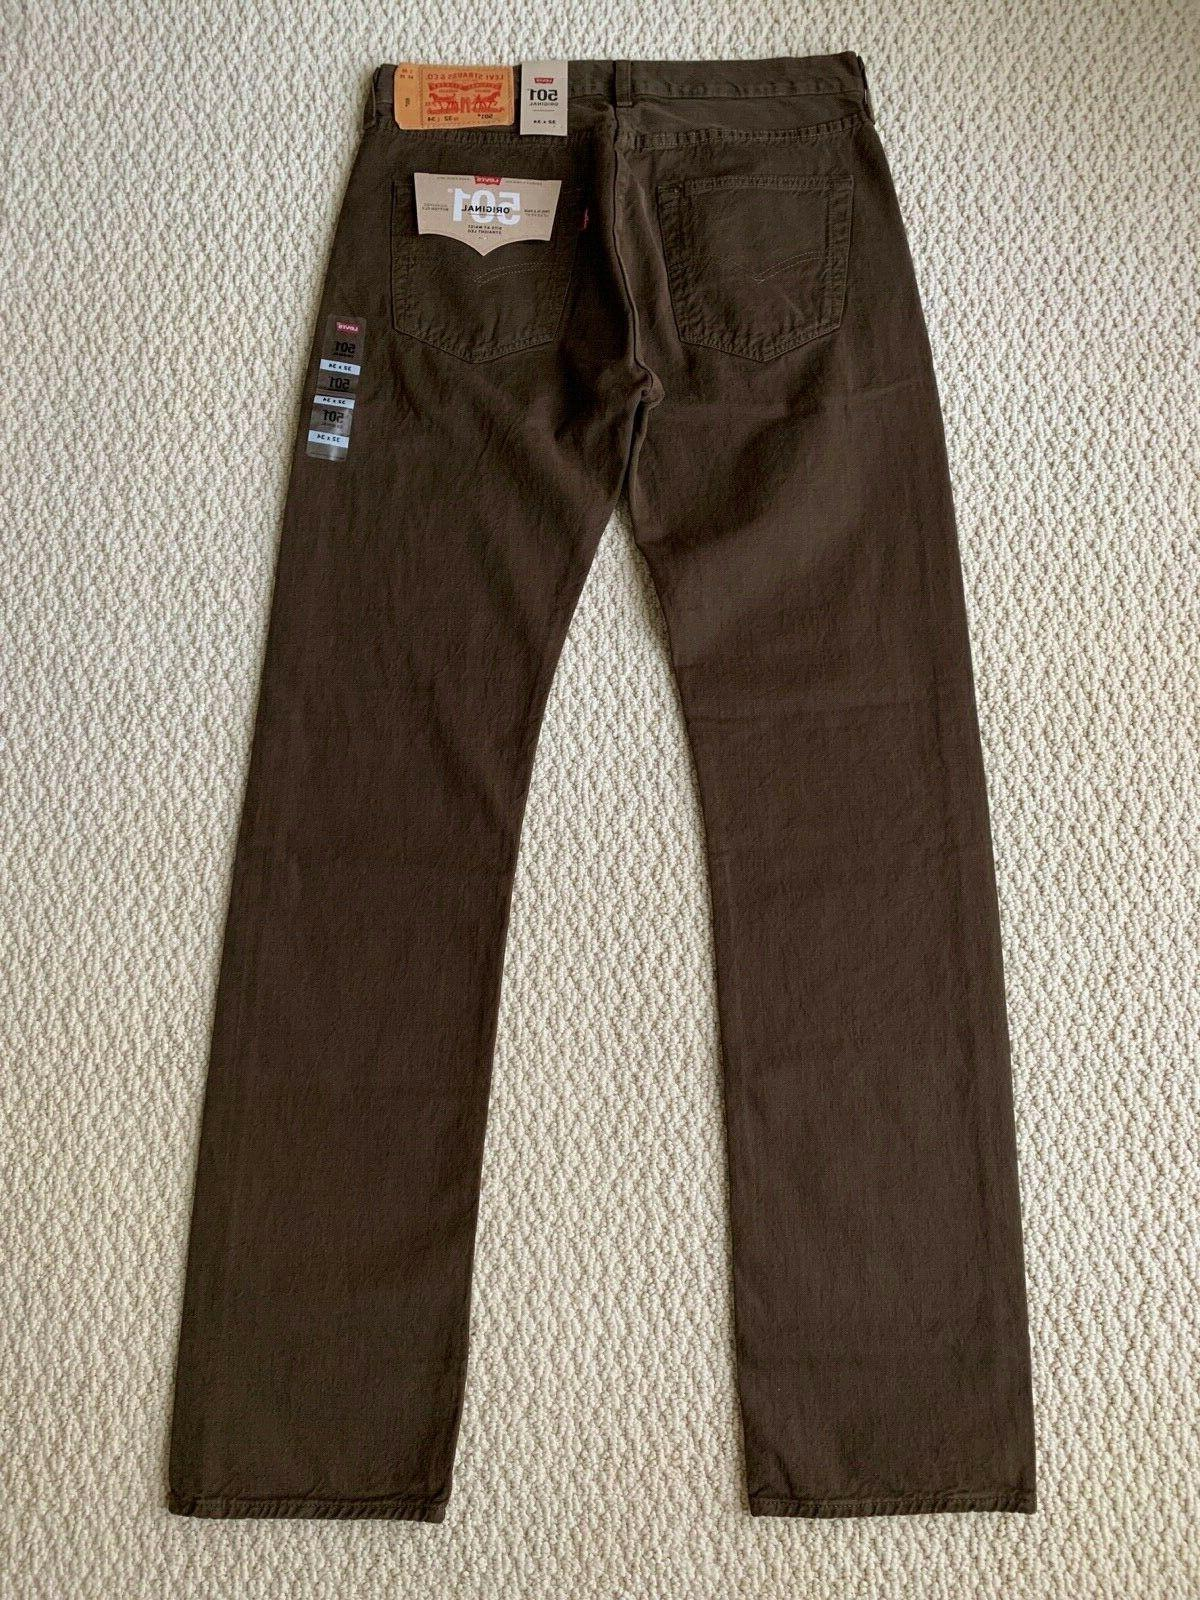 NWT Men's Levi's Original Denim Straight Leg Jeans SIZE 32